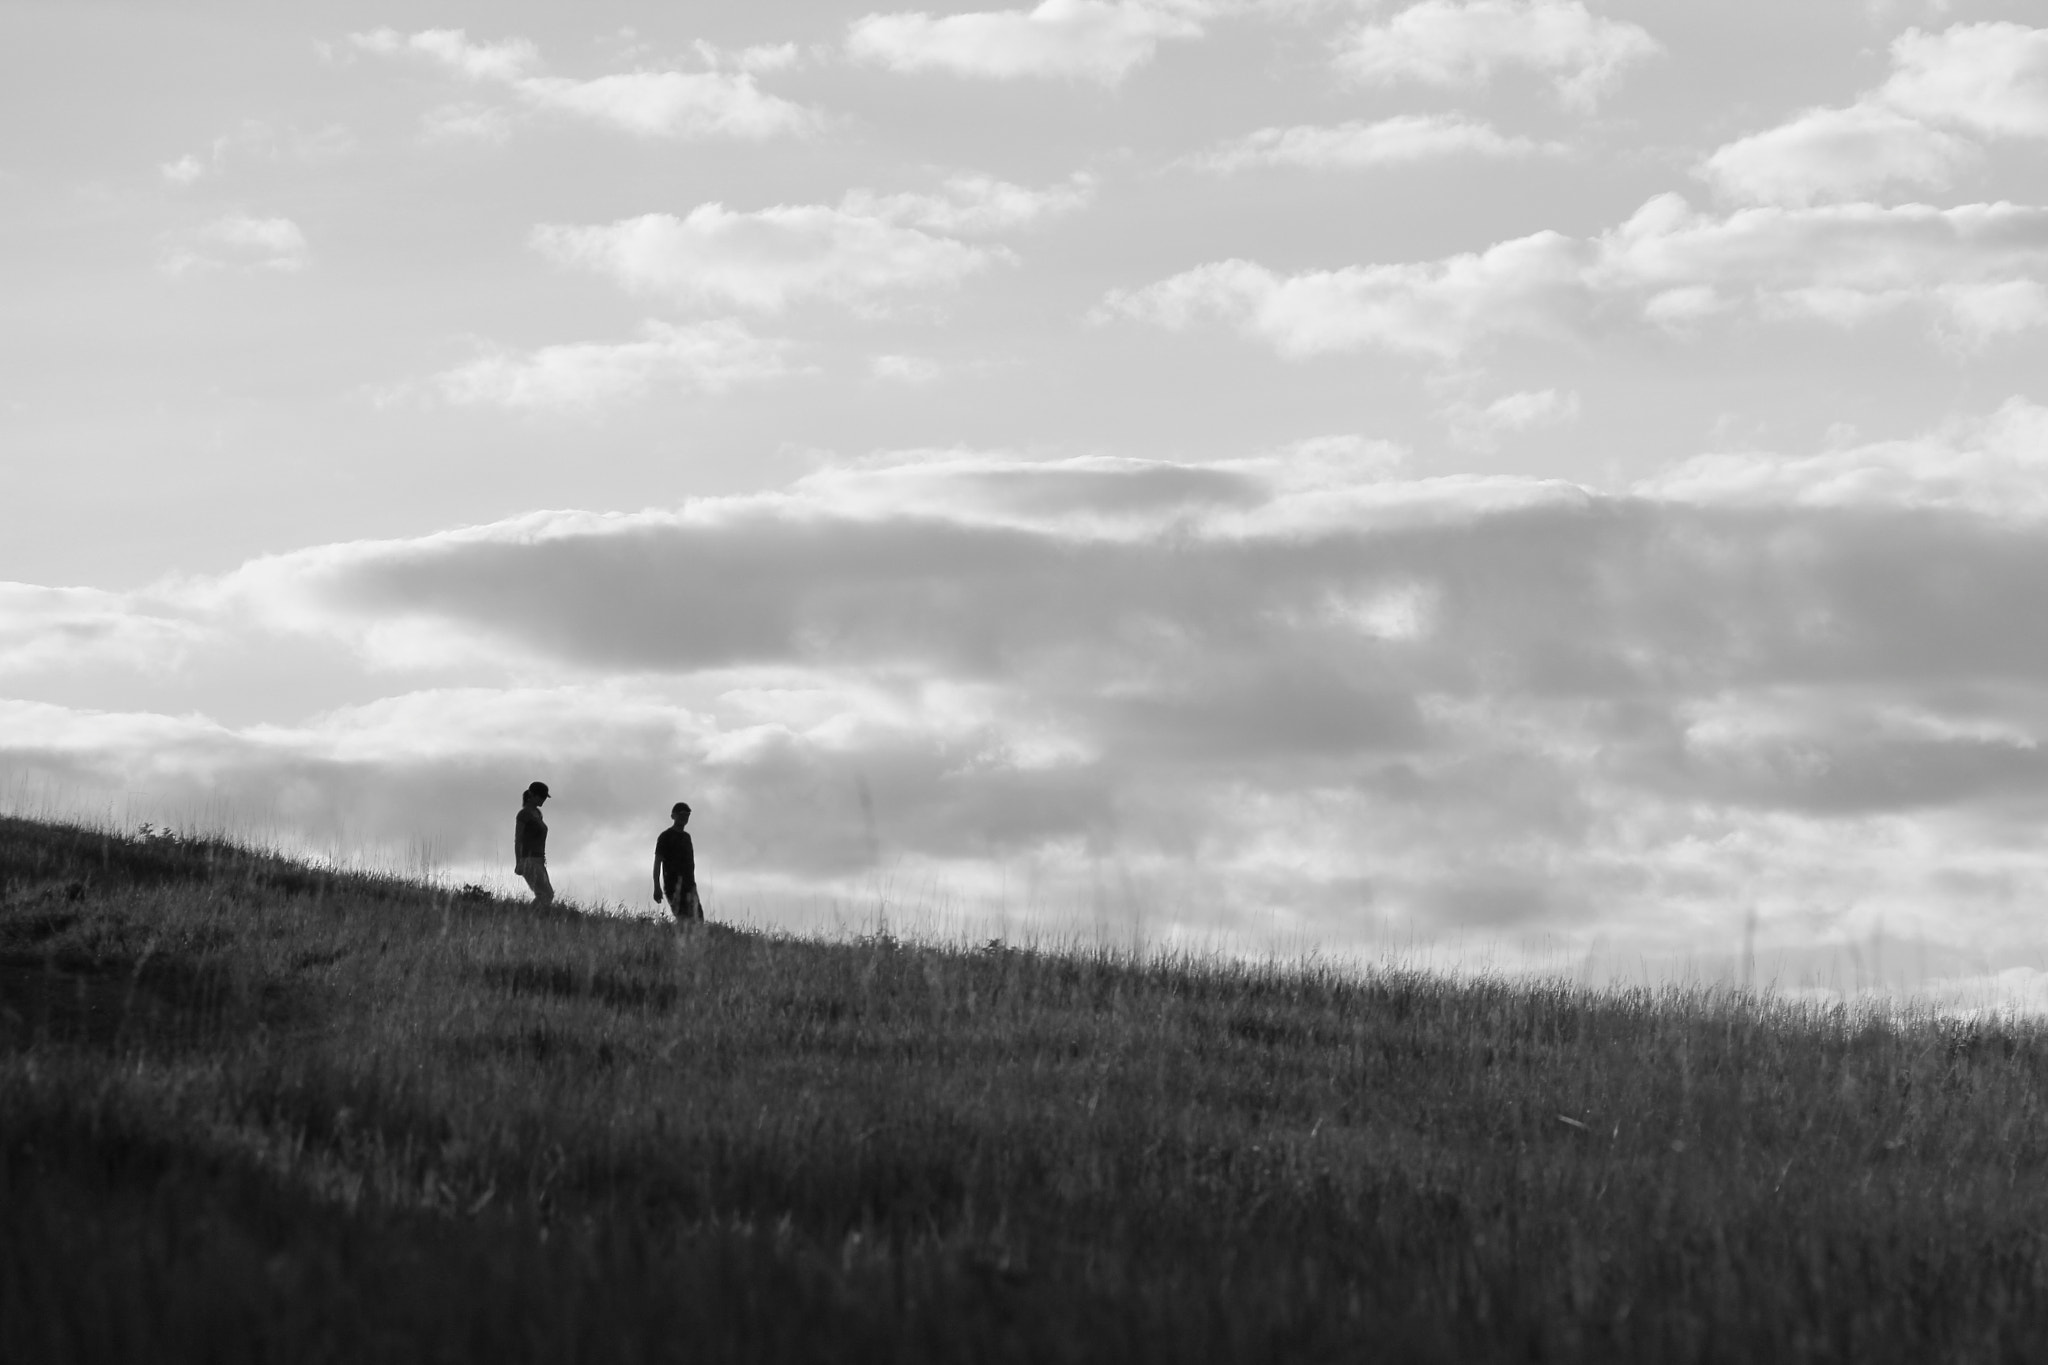 Photograph Nose Hill Park, Calgary by Twinkle Banerjee on 500px